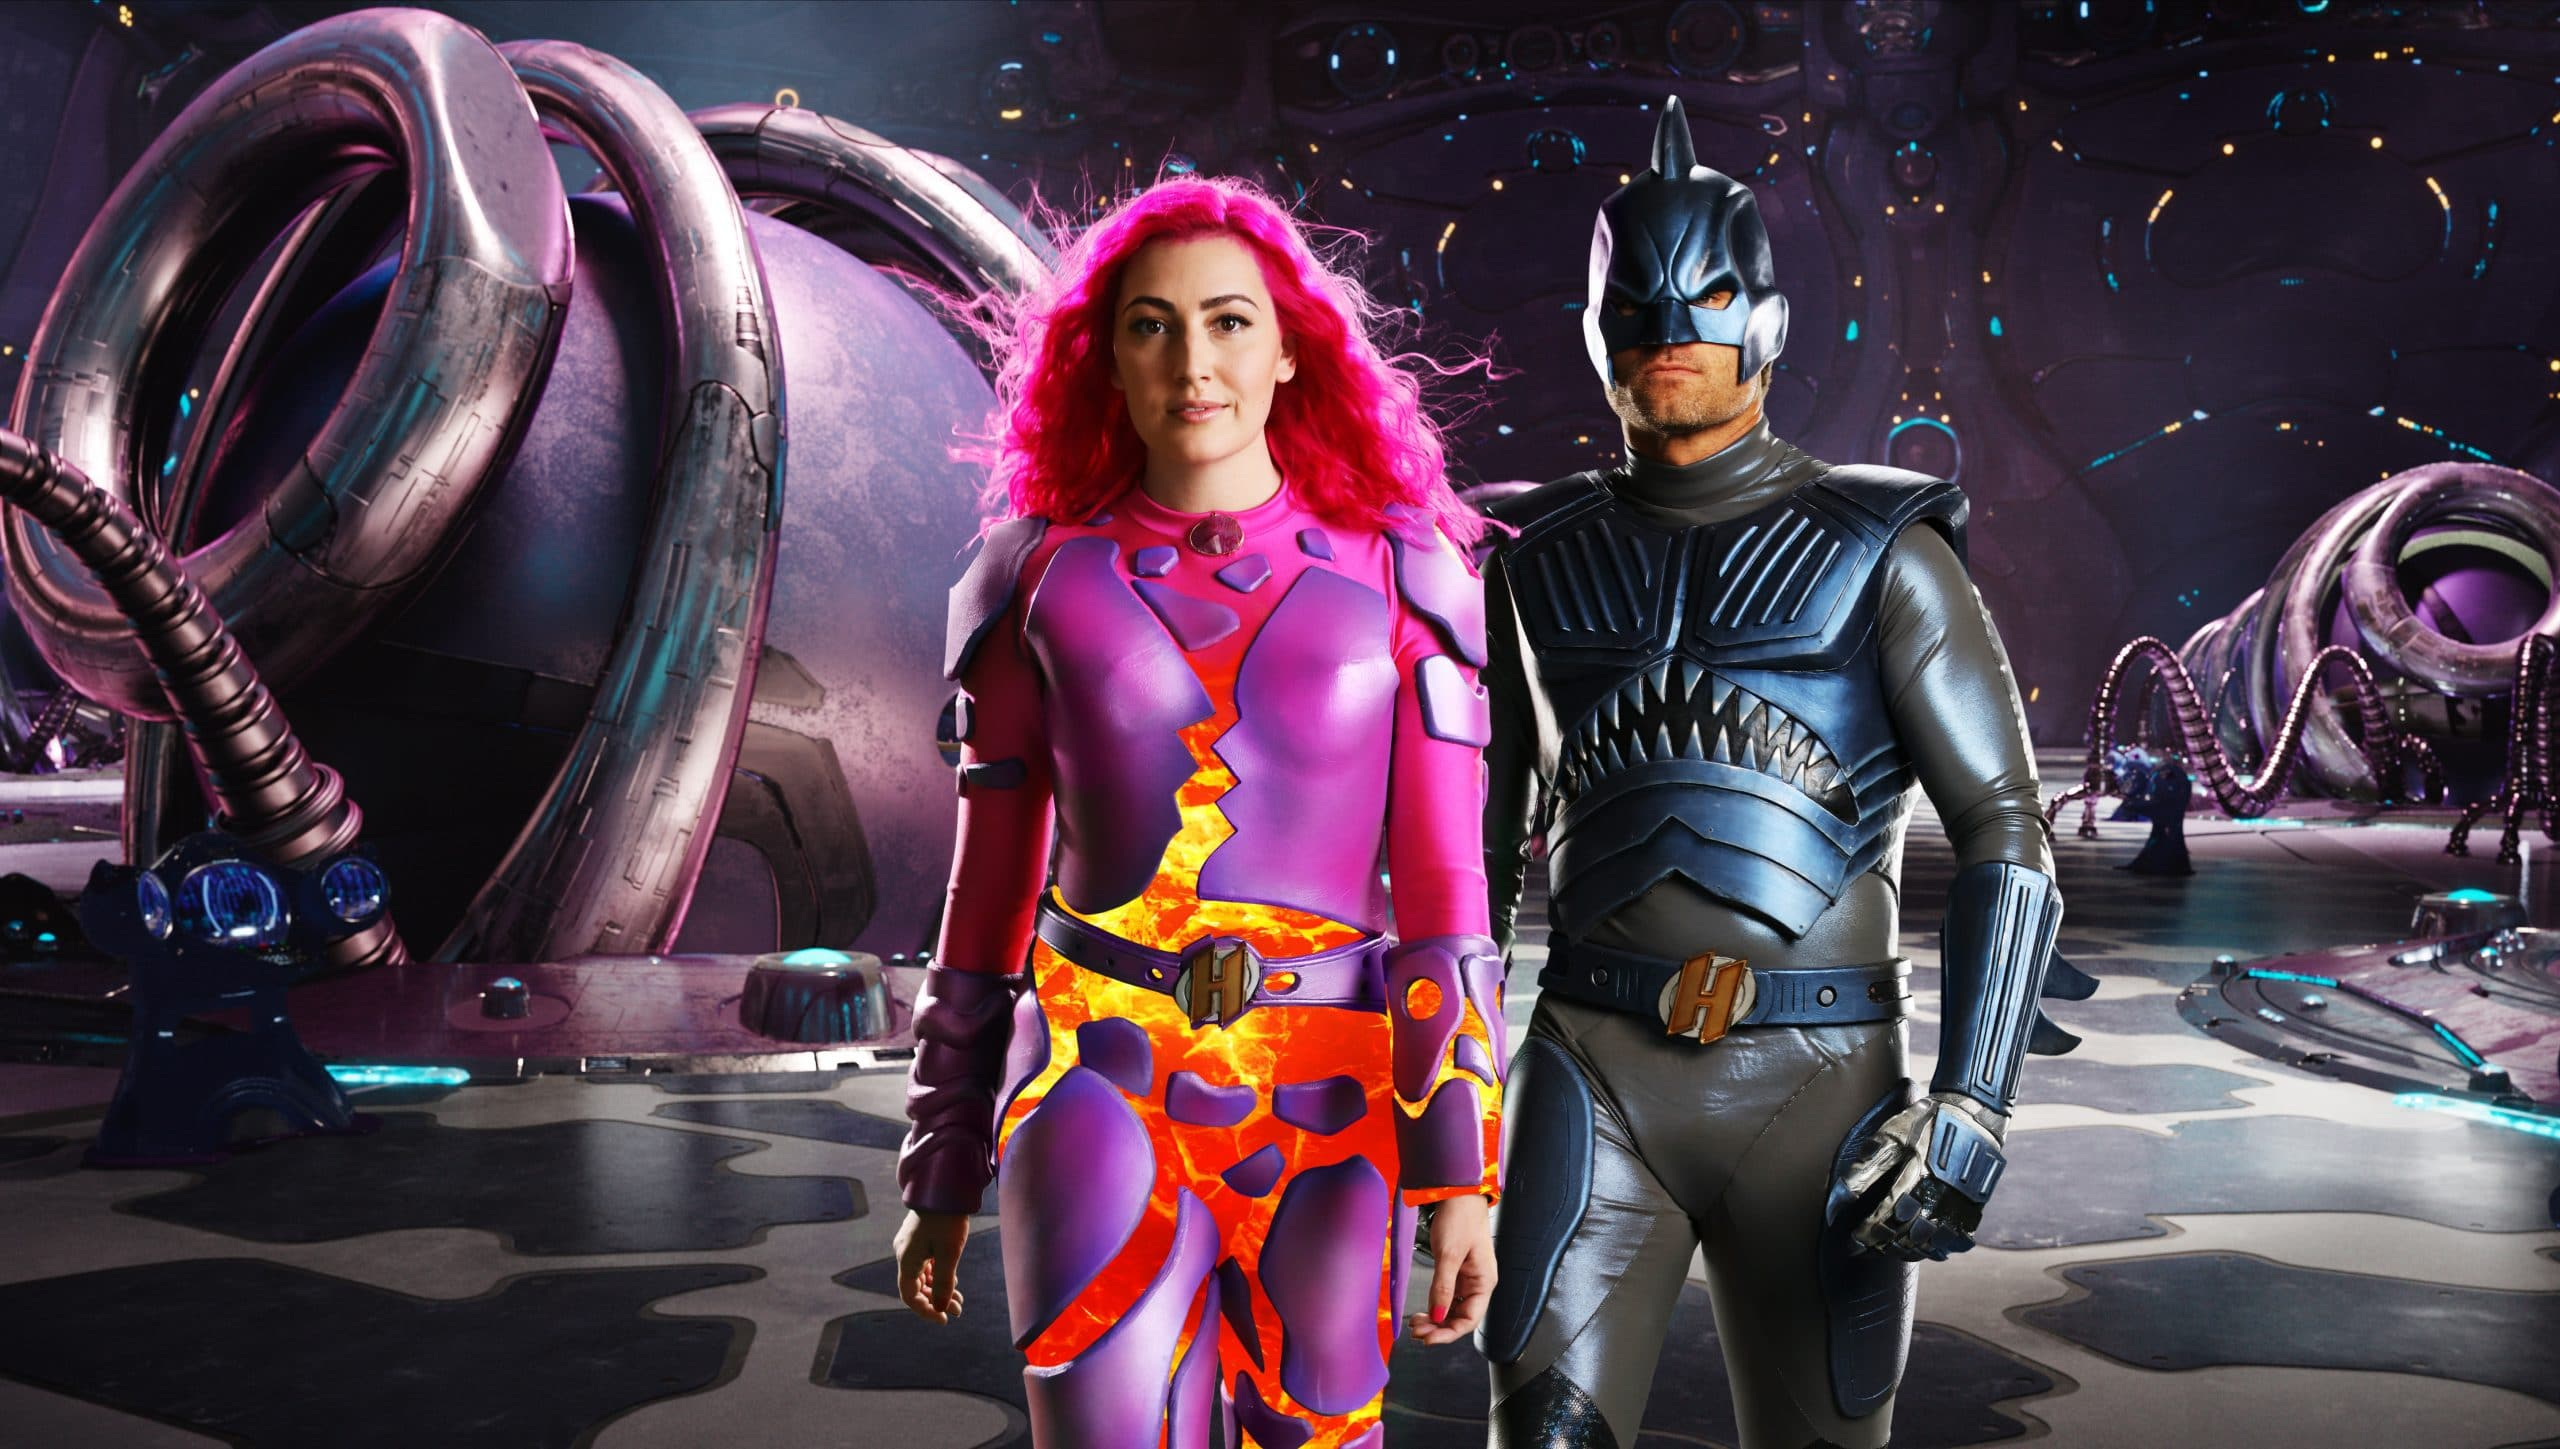 Netflix's 'We Can Be Heroes' Trailer Brings Back Sharkboy and Lavagirl